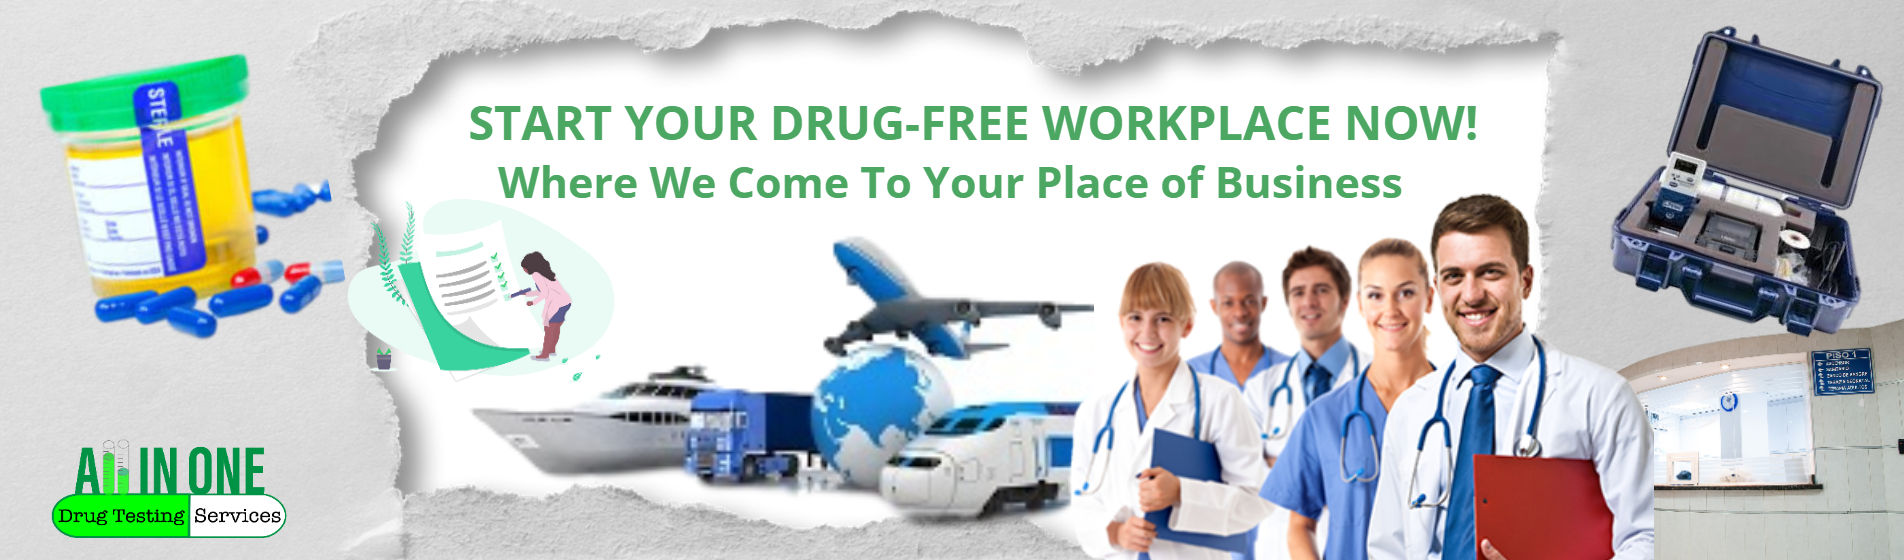 drug free workplace random testing, drug free quotes, drug free workplace program, drug free workplace, drug free workplace act, drug free world, drug free sport, drug free, drug free workplace policy template, random drug testing policy template, random drug testing procedure, drug free workplace policy, can employer drug test without notice, random drug testing probation